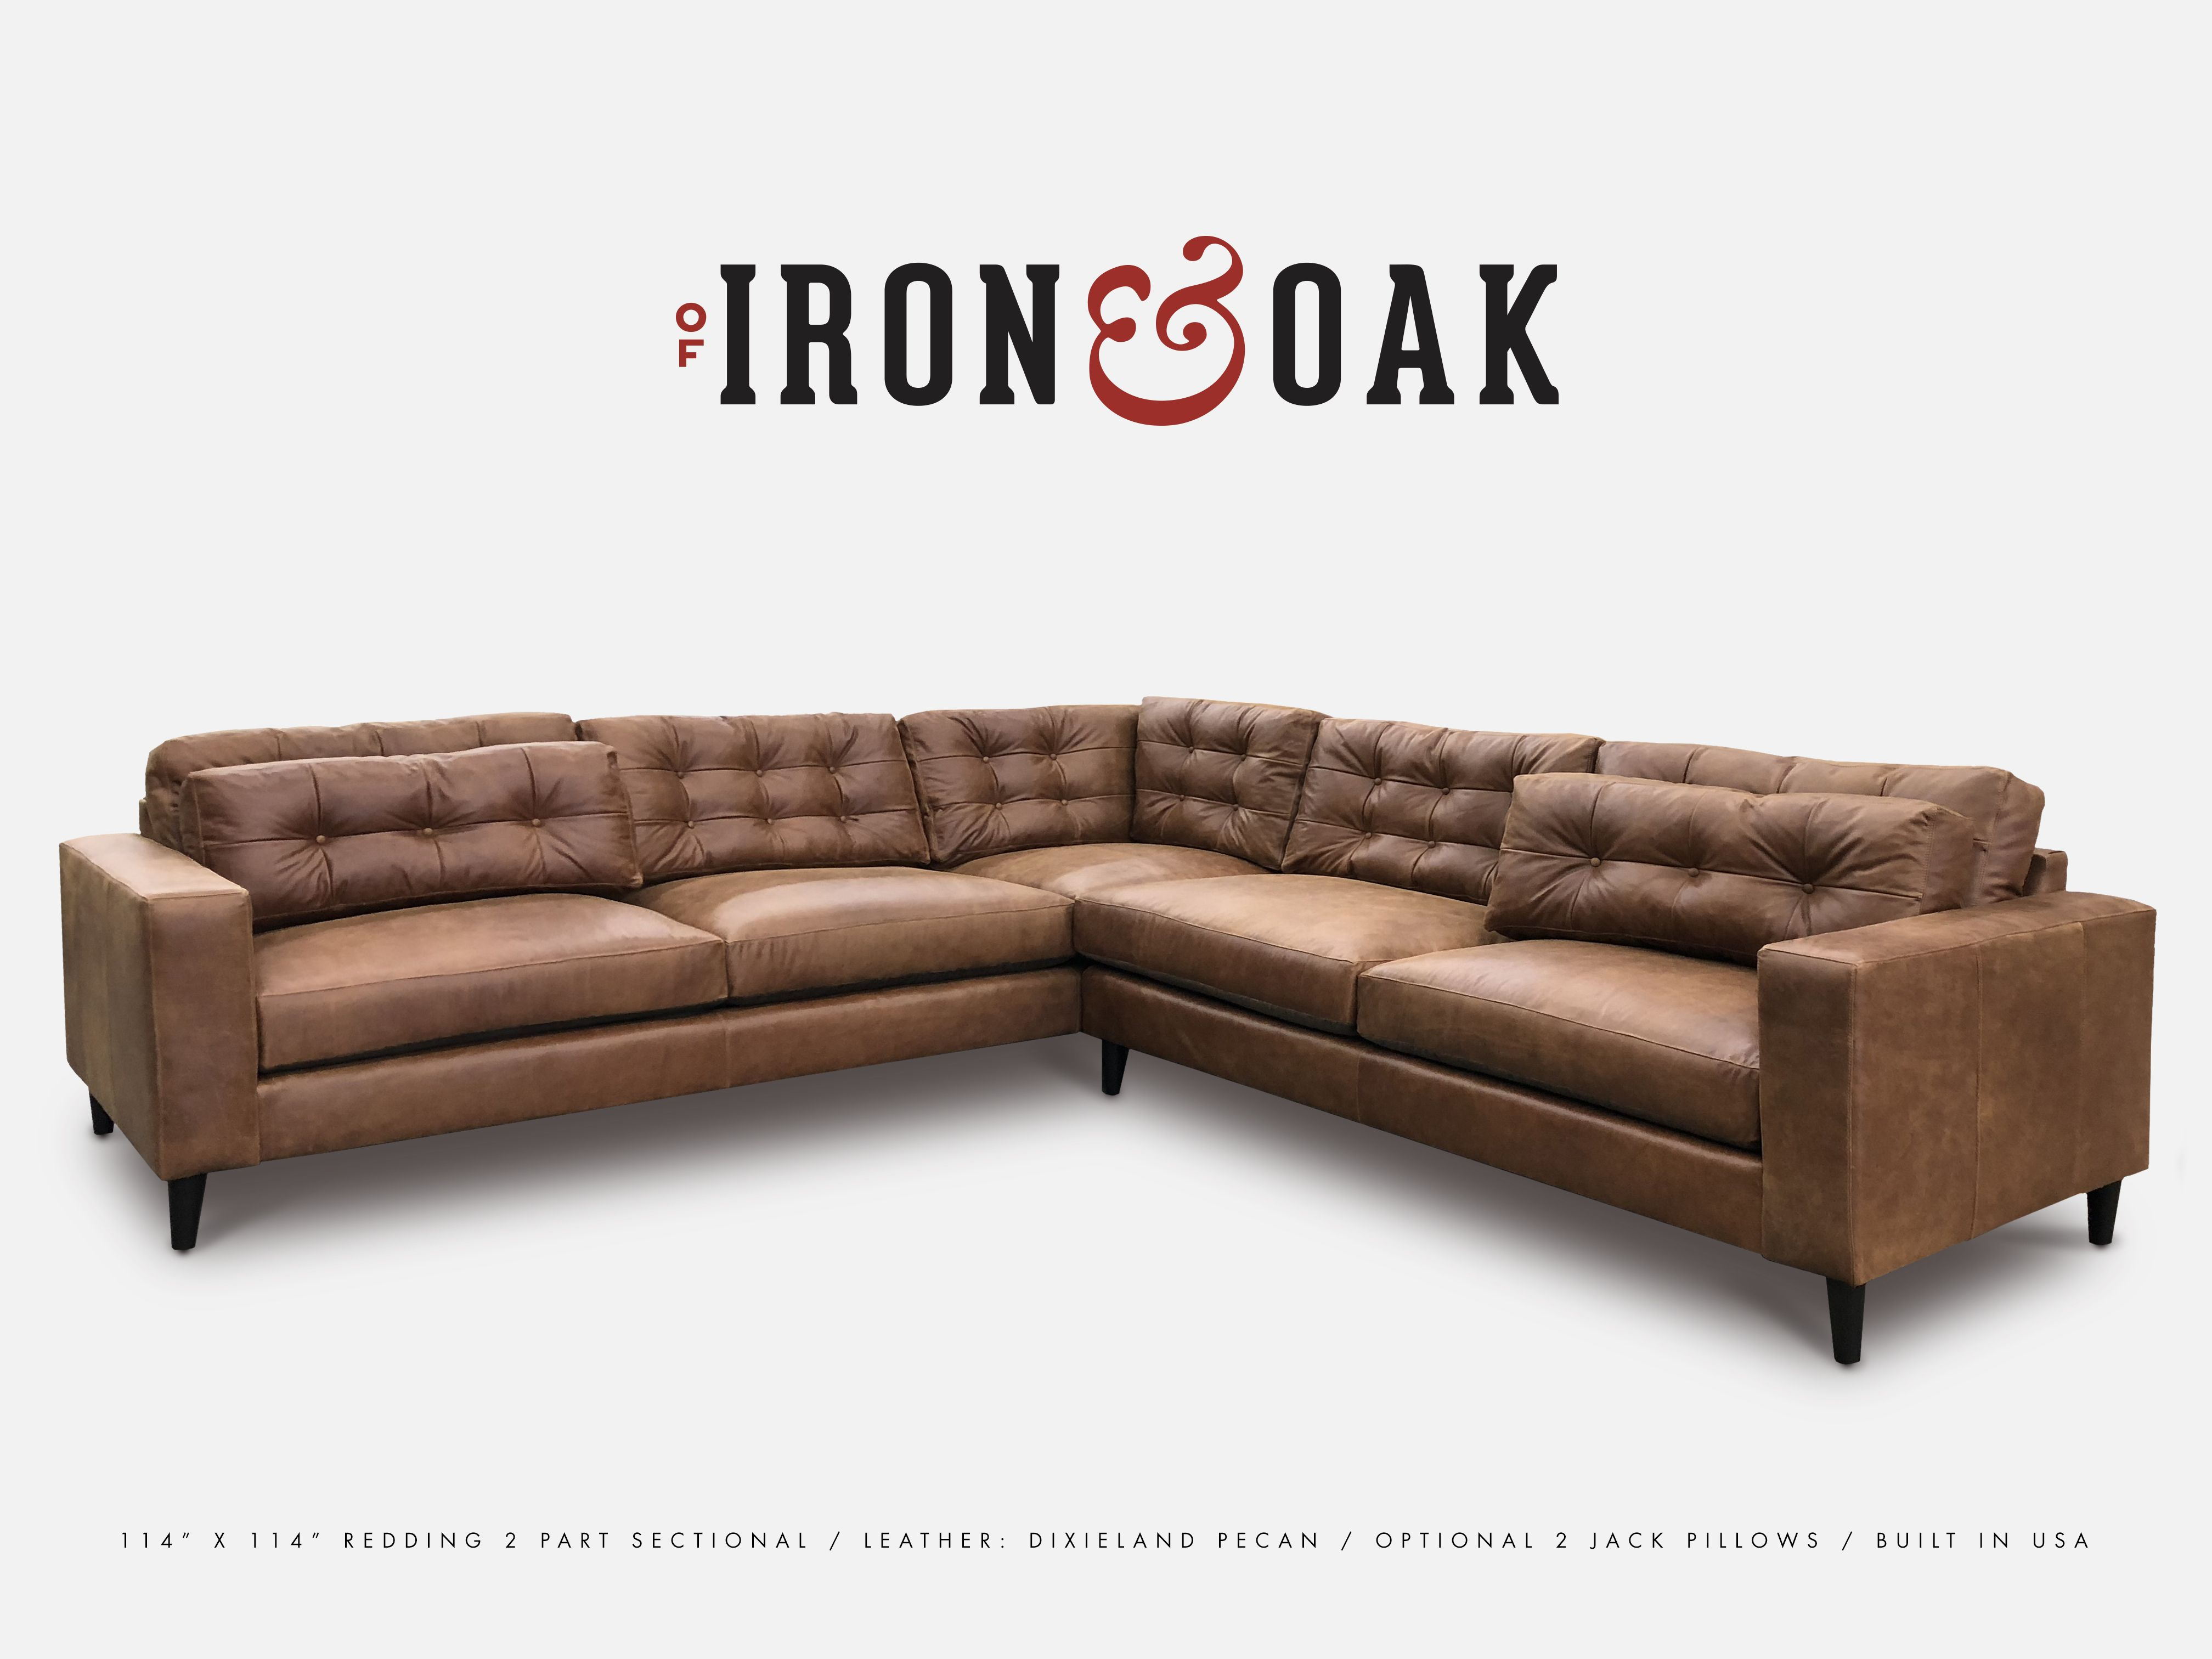 This Redding Sectional Sofa Measures 114 X 114 And Is Built To Perfection By Of Iron And Oak Features High Bac With Images Sectional Leather Sectional Custom Furniture